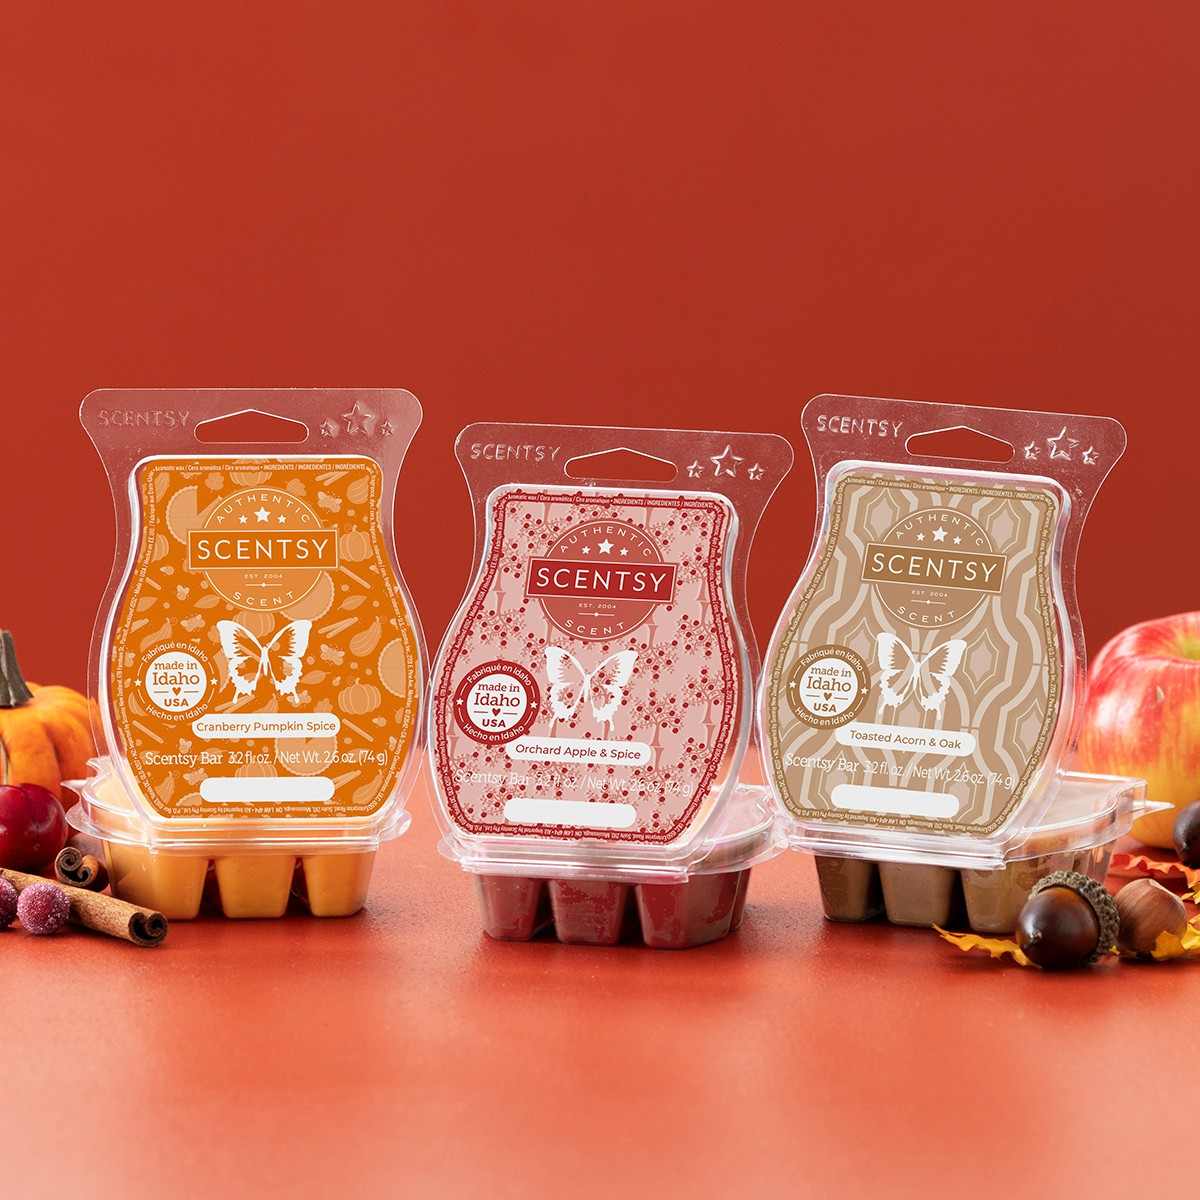 Scentsy Harvest Wax Collection 20212 | Harvest 2021 Scentsy Bar Collection